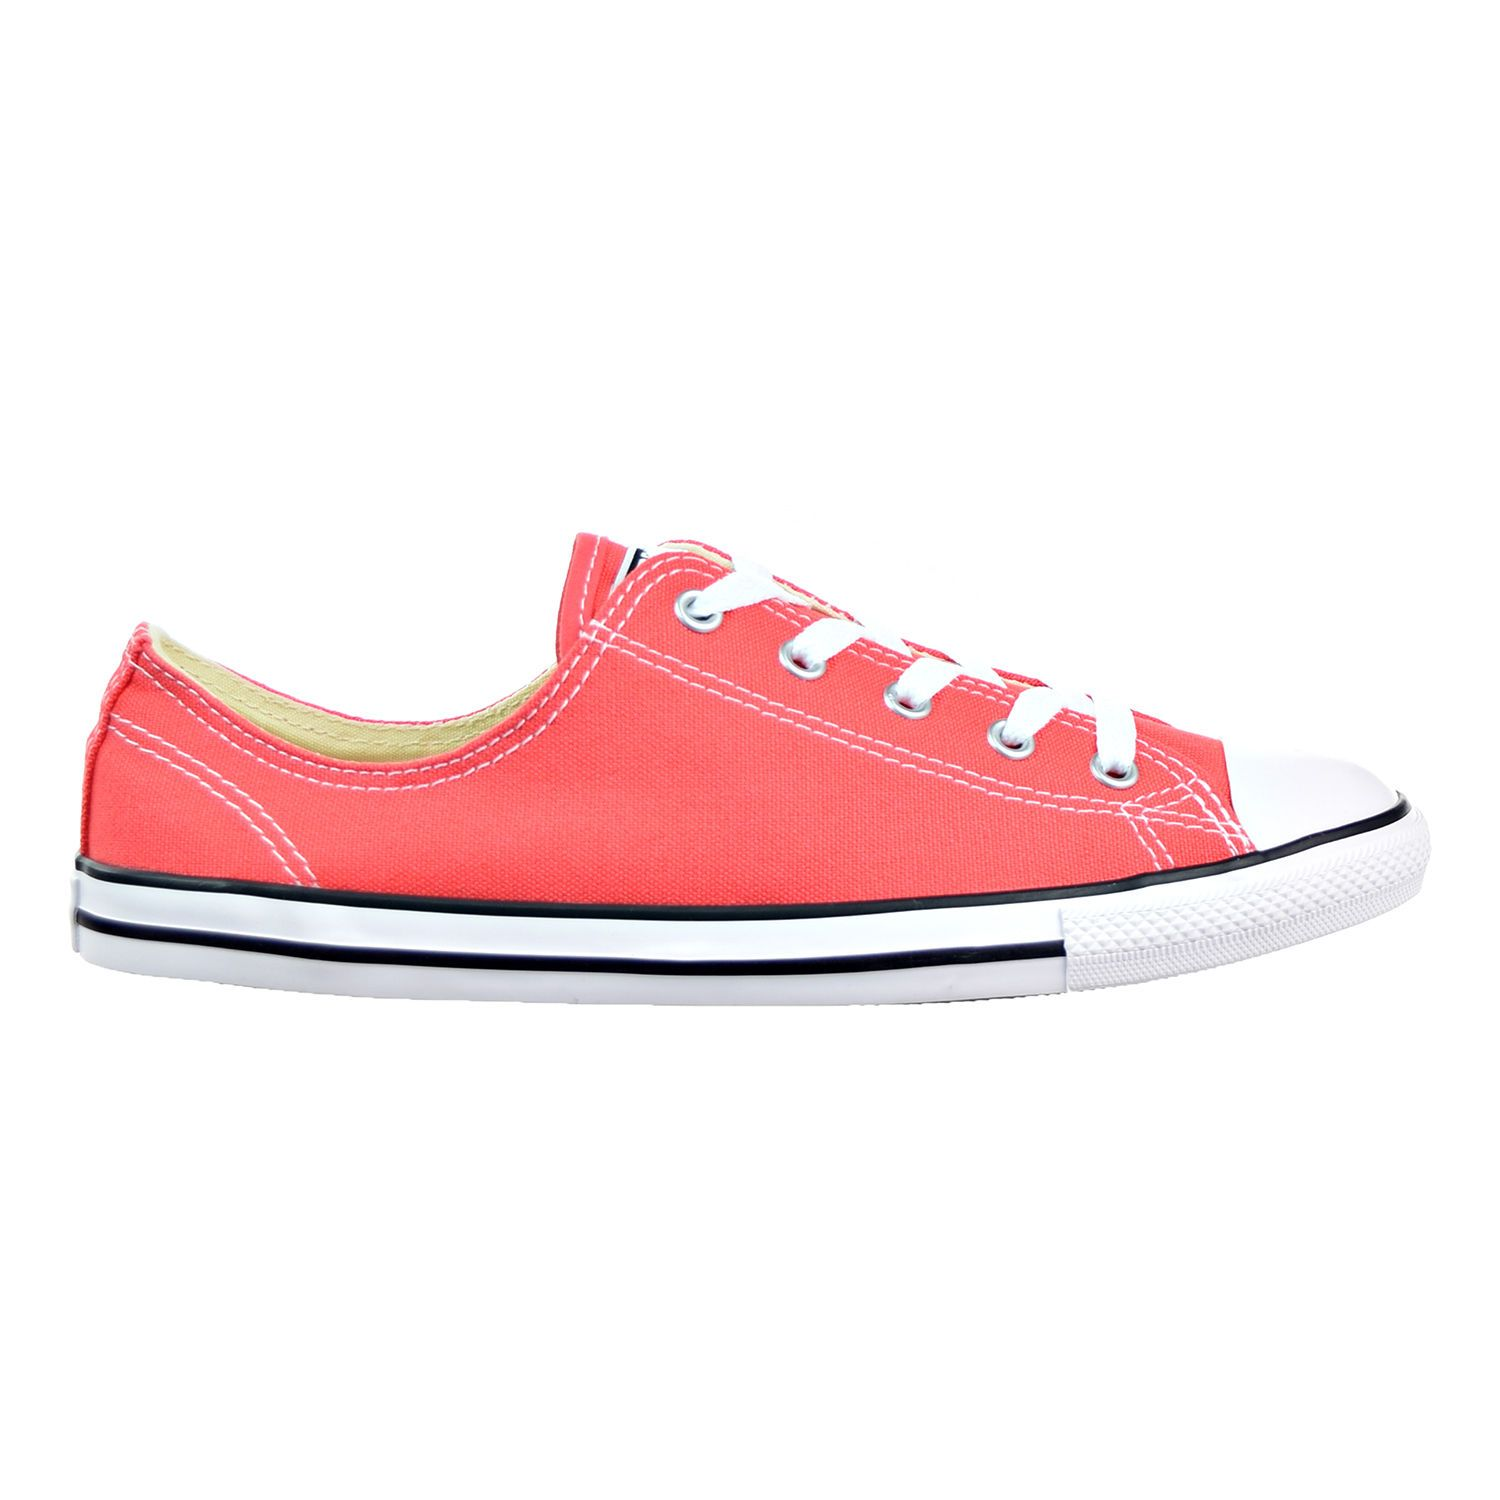 Converse Chuck Taylor All Star Dainty Ox Women's Shoe Red/Black/White  555987C